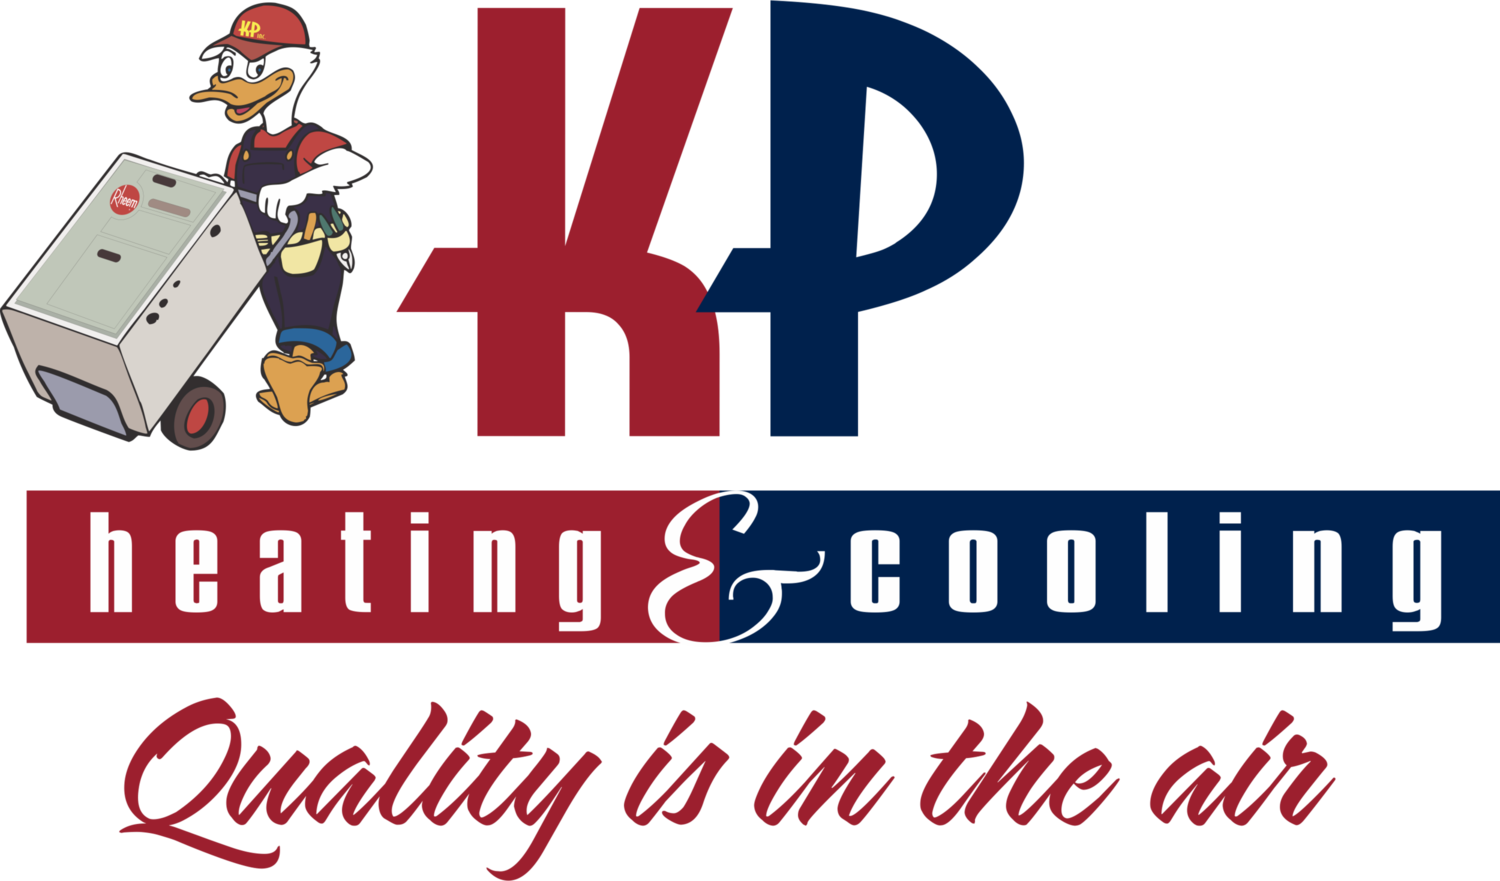 KP Heating and Cooling